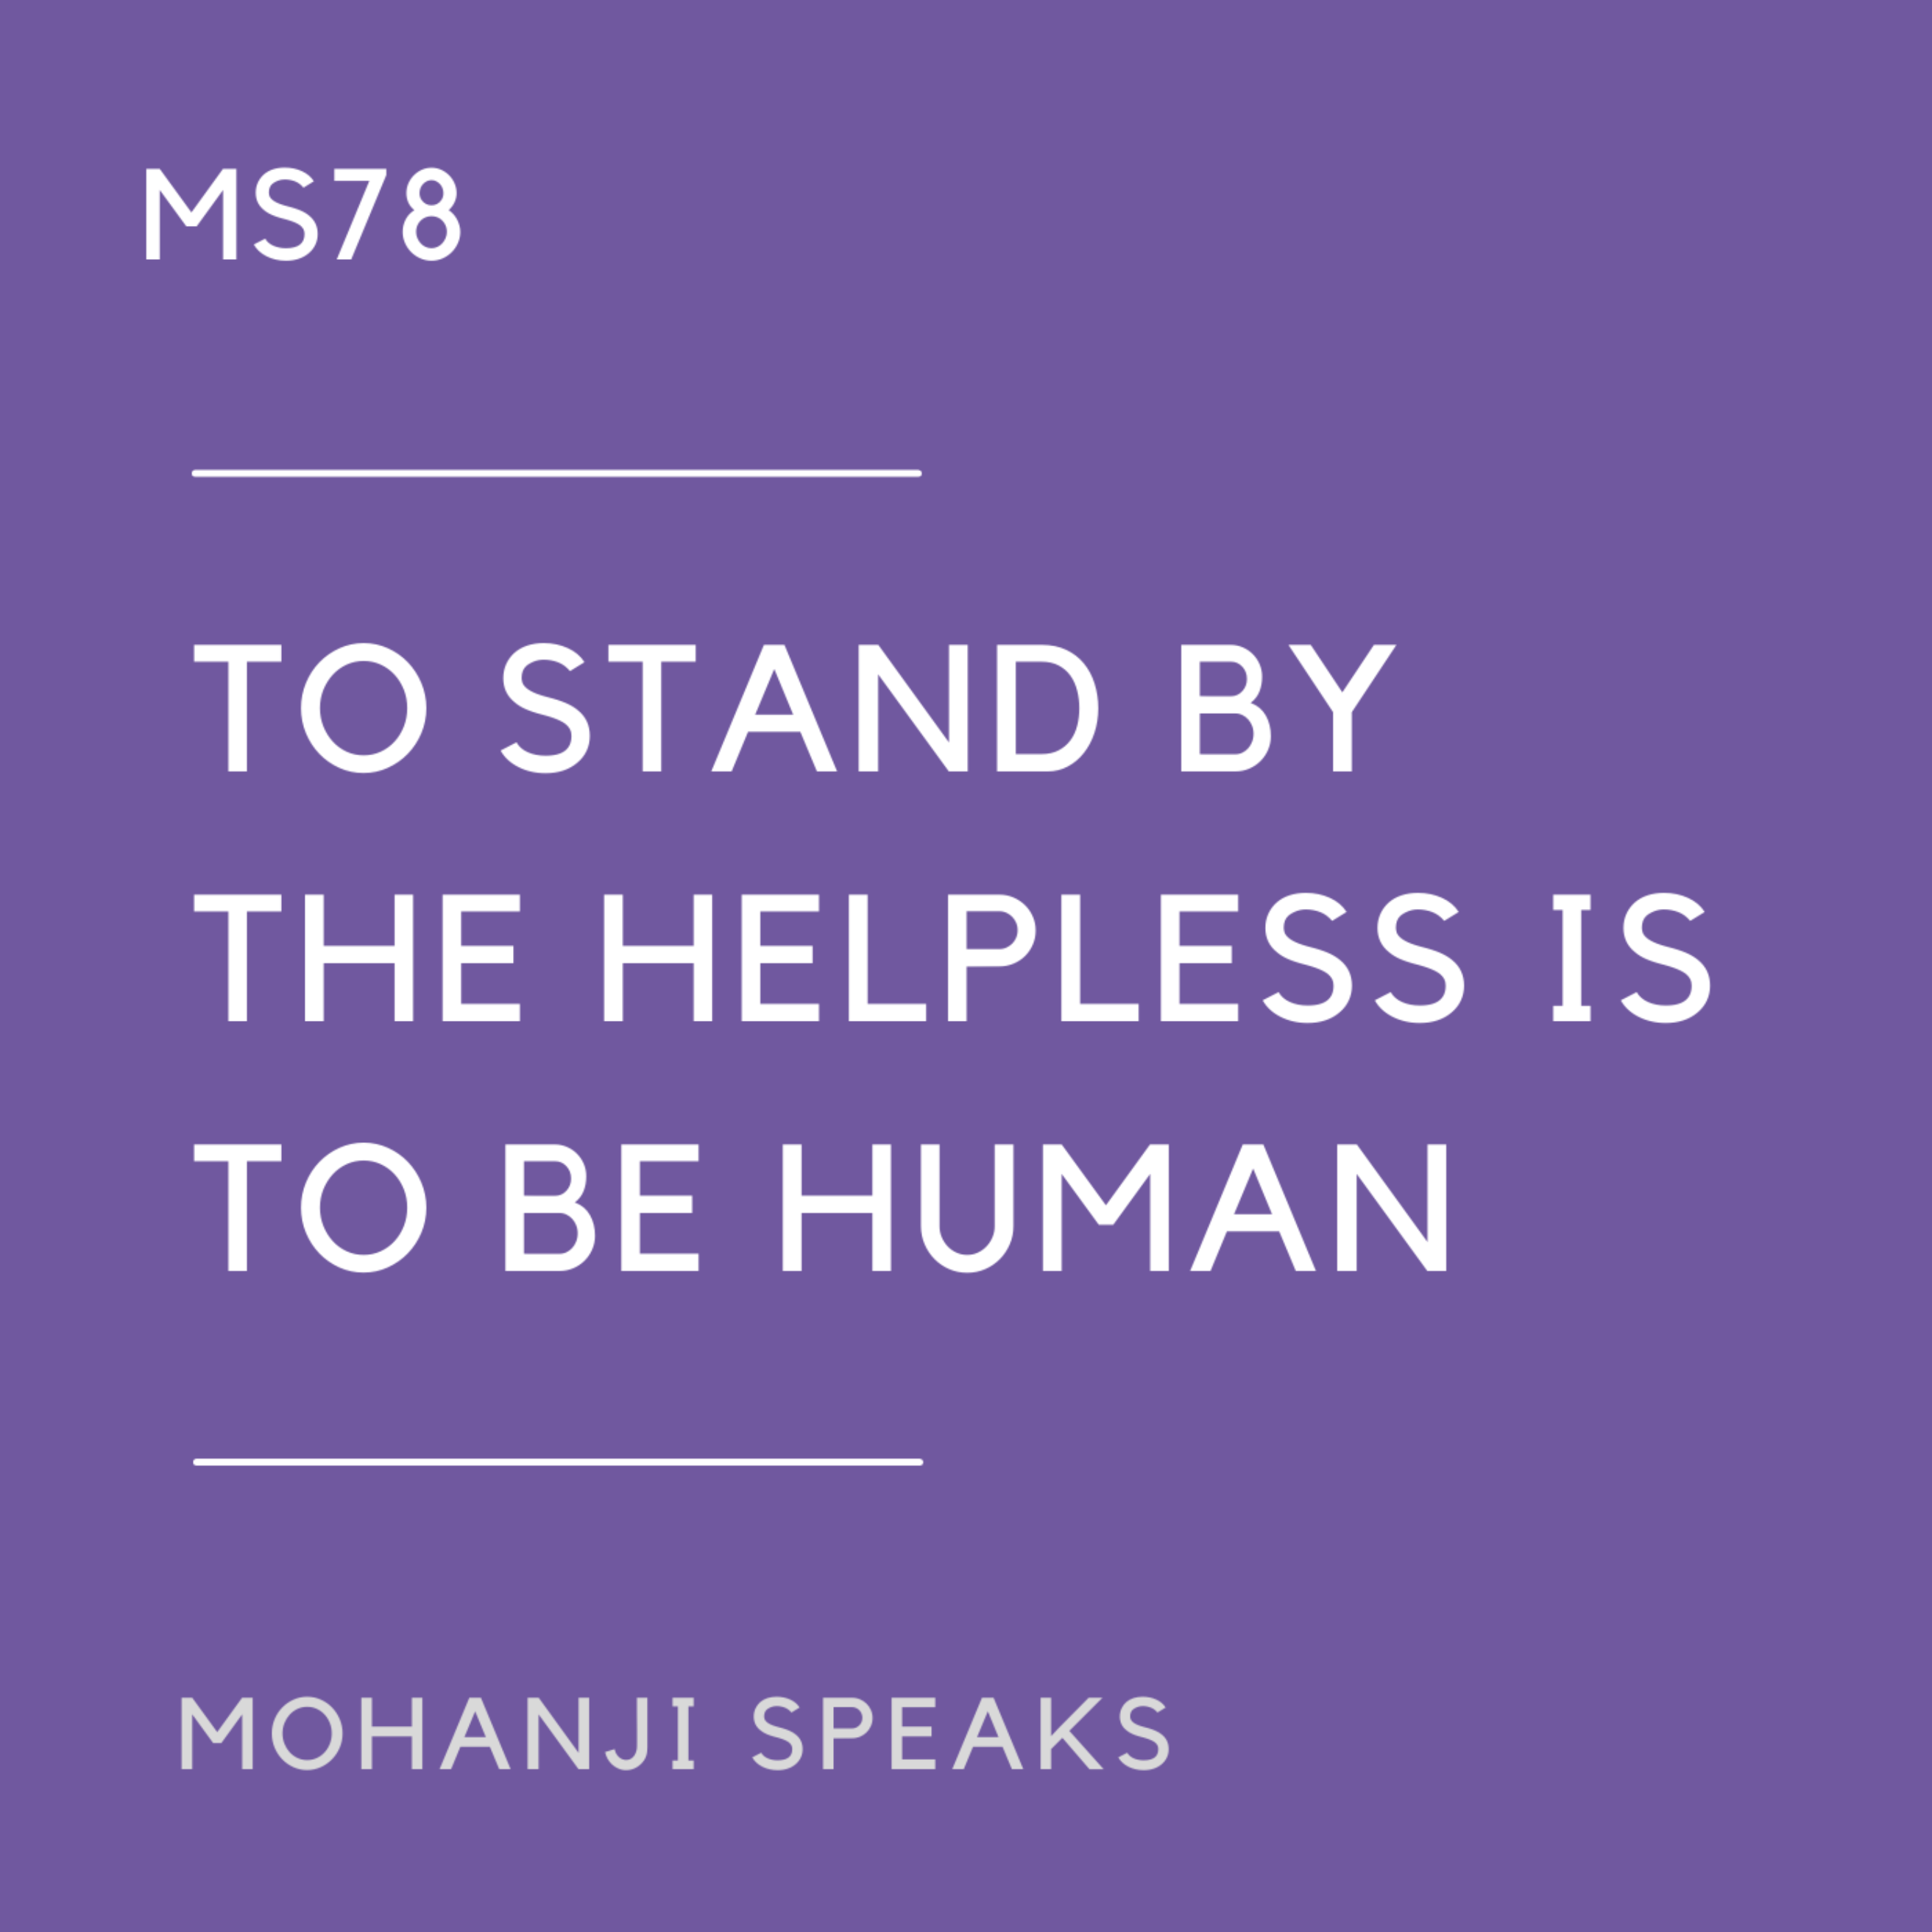 MS78 - To stand by the helpless is to be human